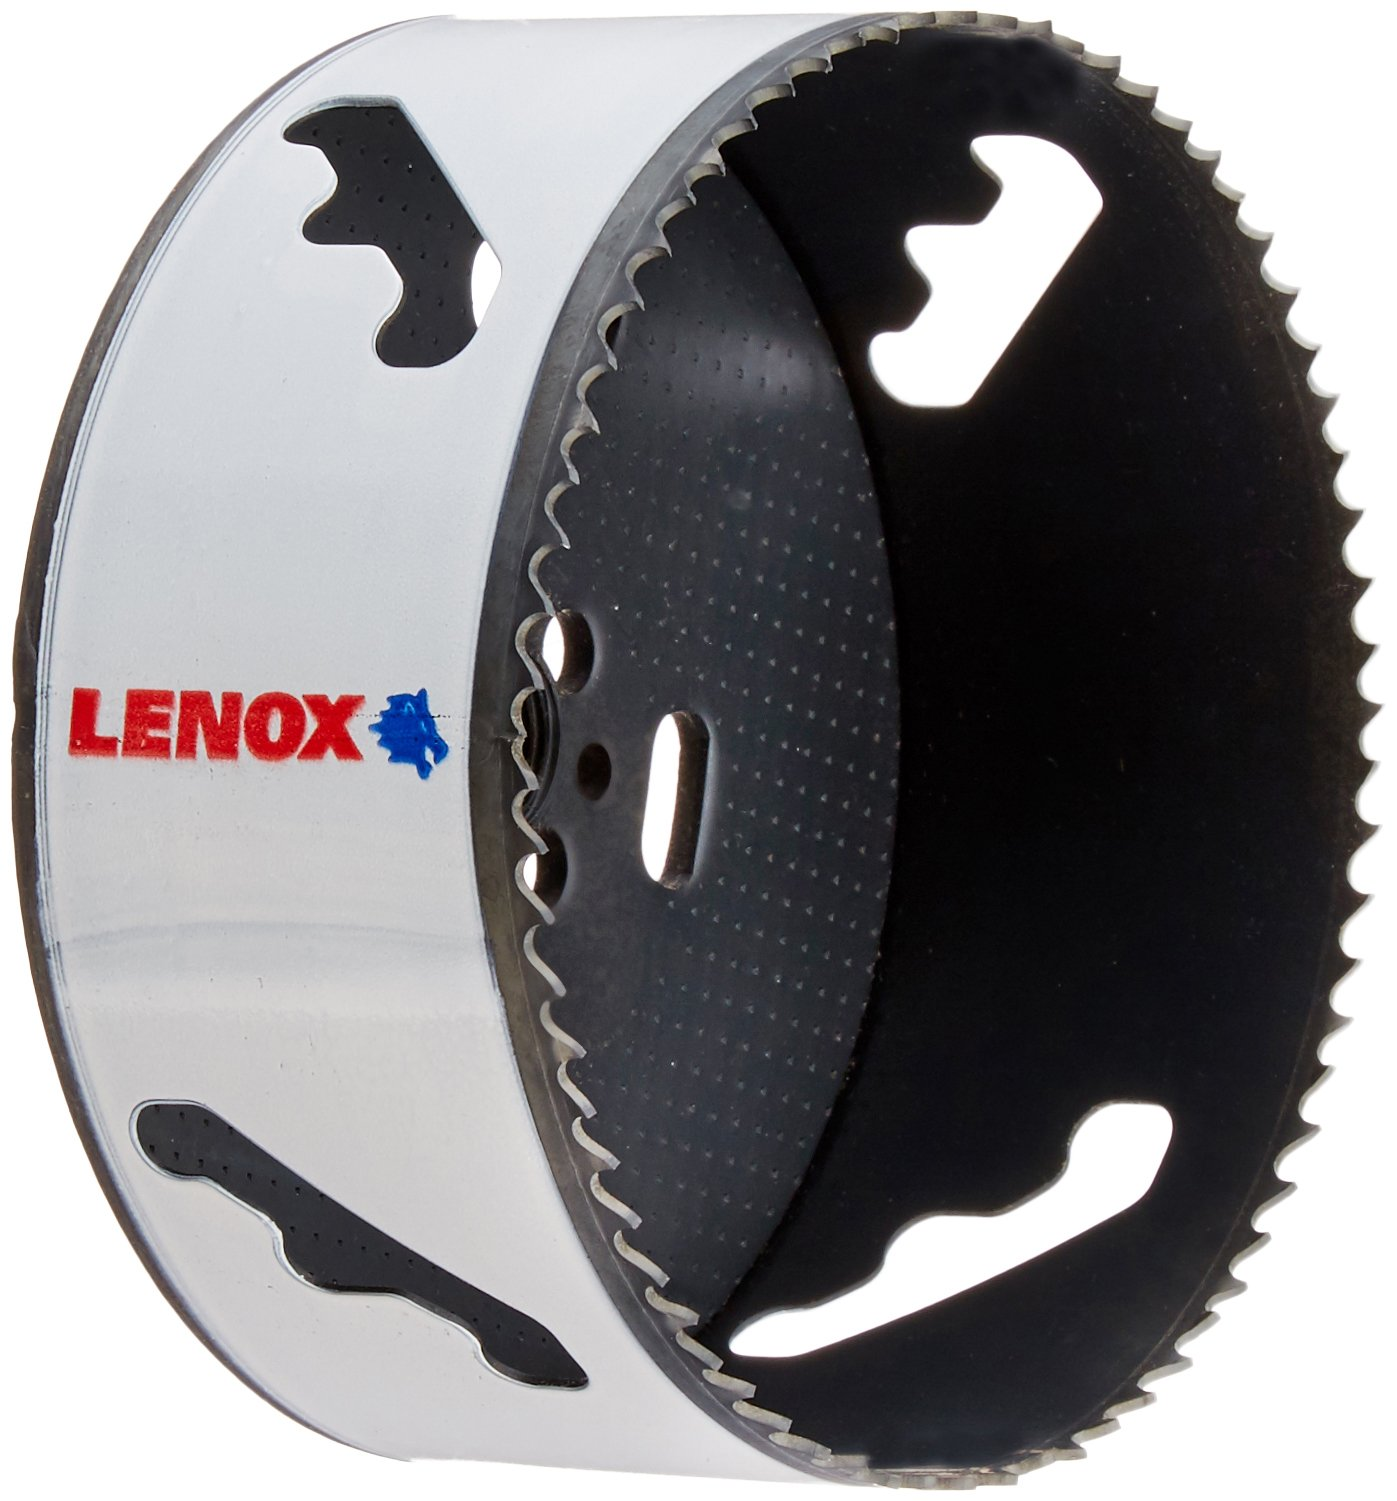 LENOX Tools Bi-Metal Speed Slot Hole Saw with T3 Technology, 4-5/8'' by Lenox Tools